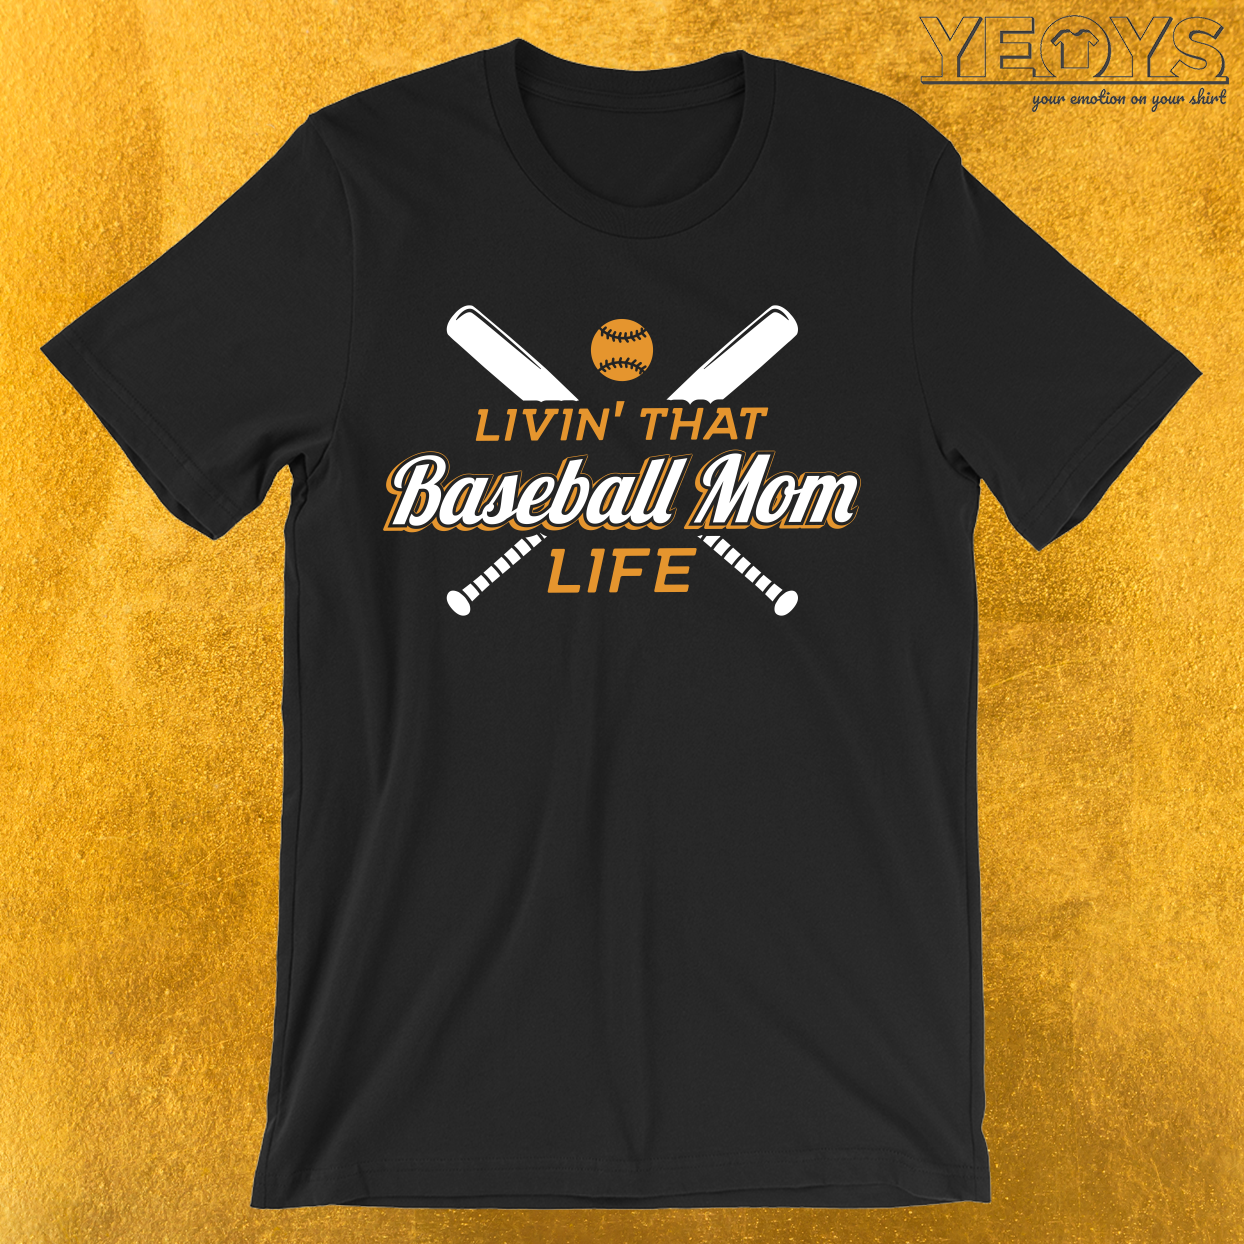 Livin' That Baseball Mom Life T-Shirt